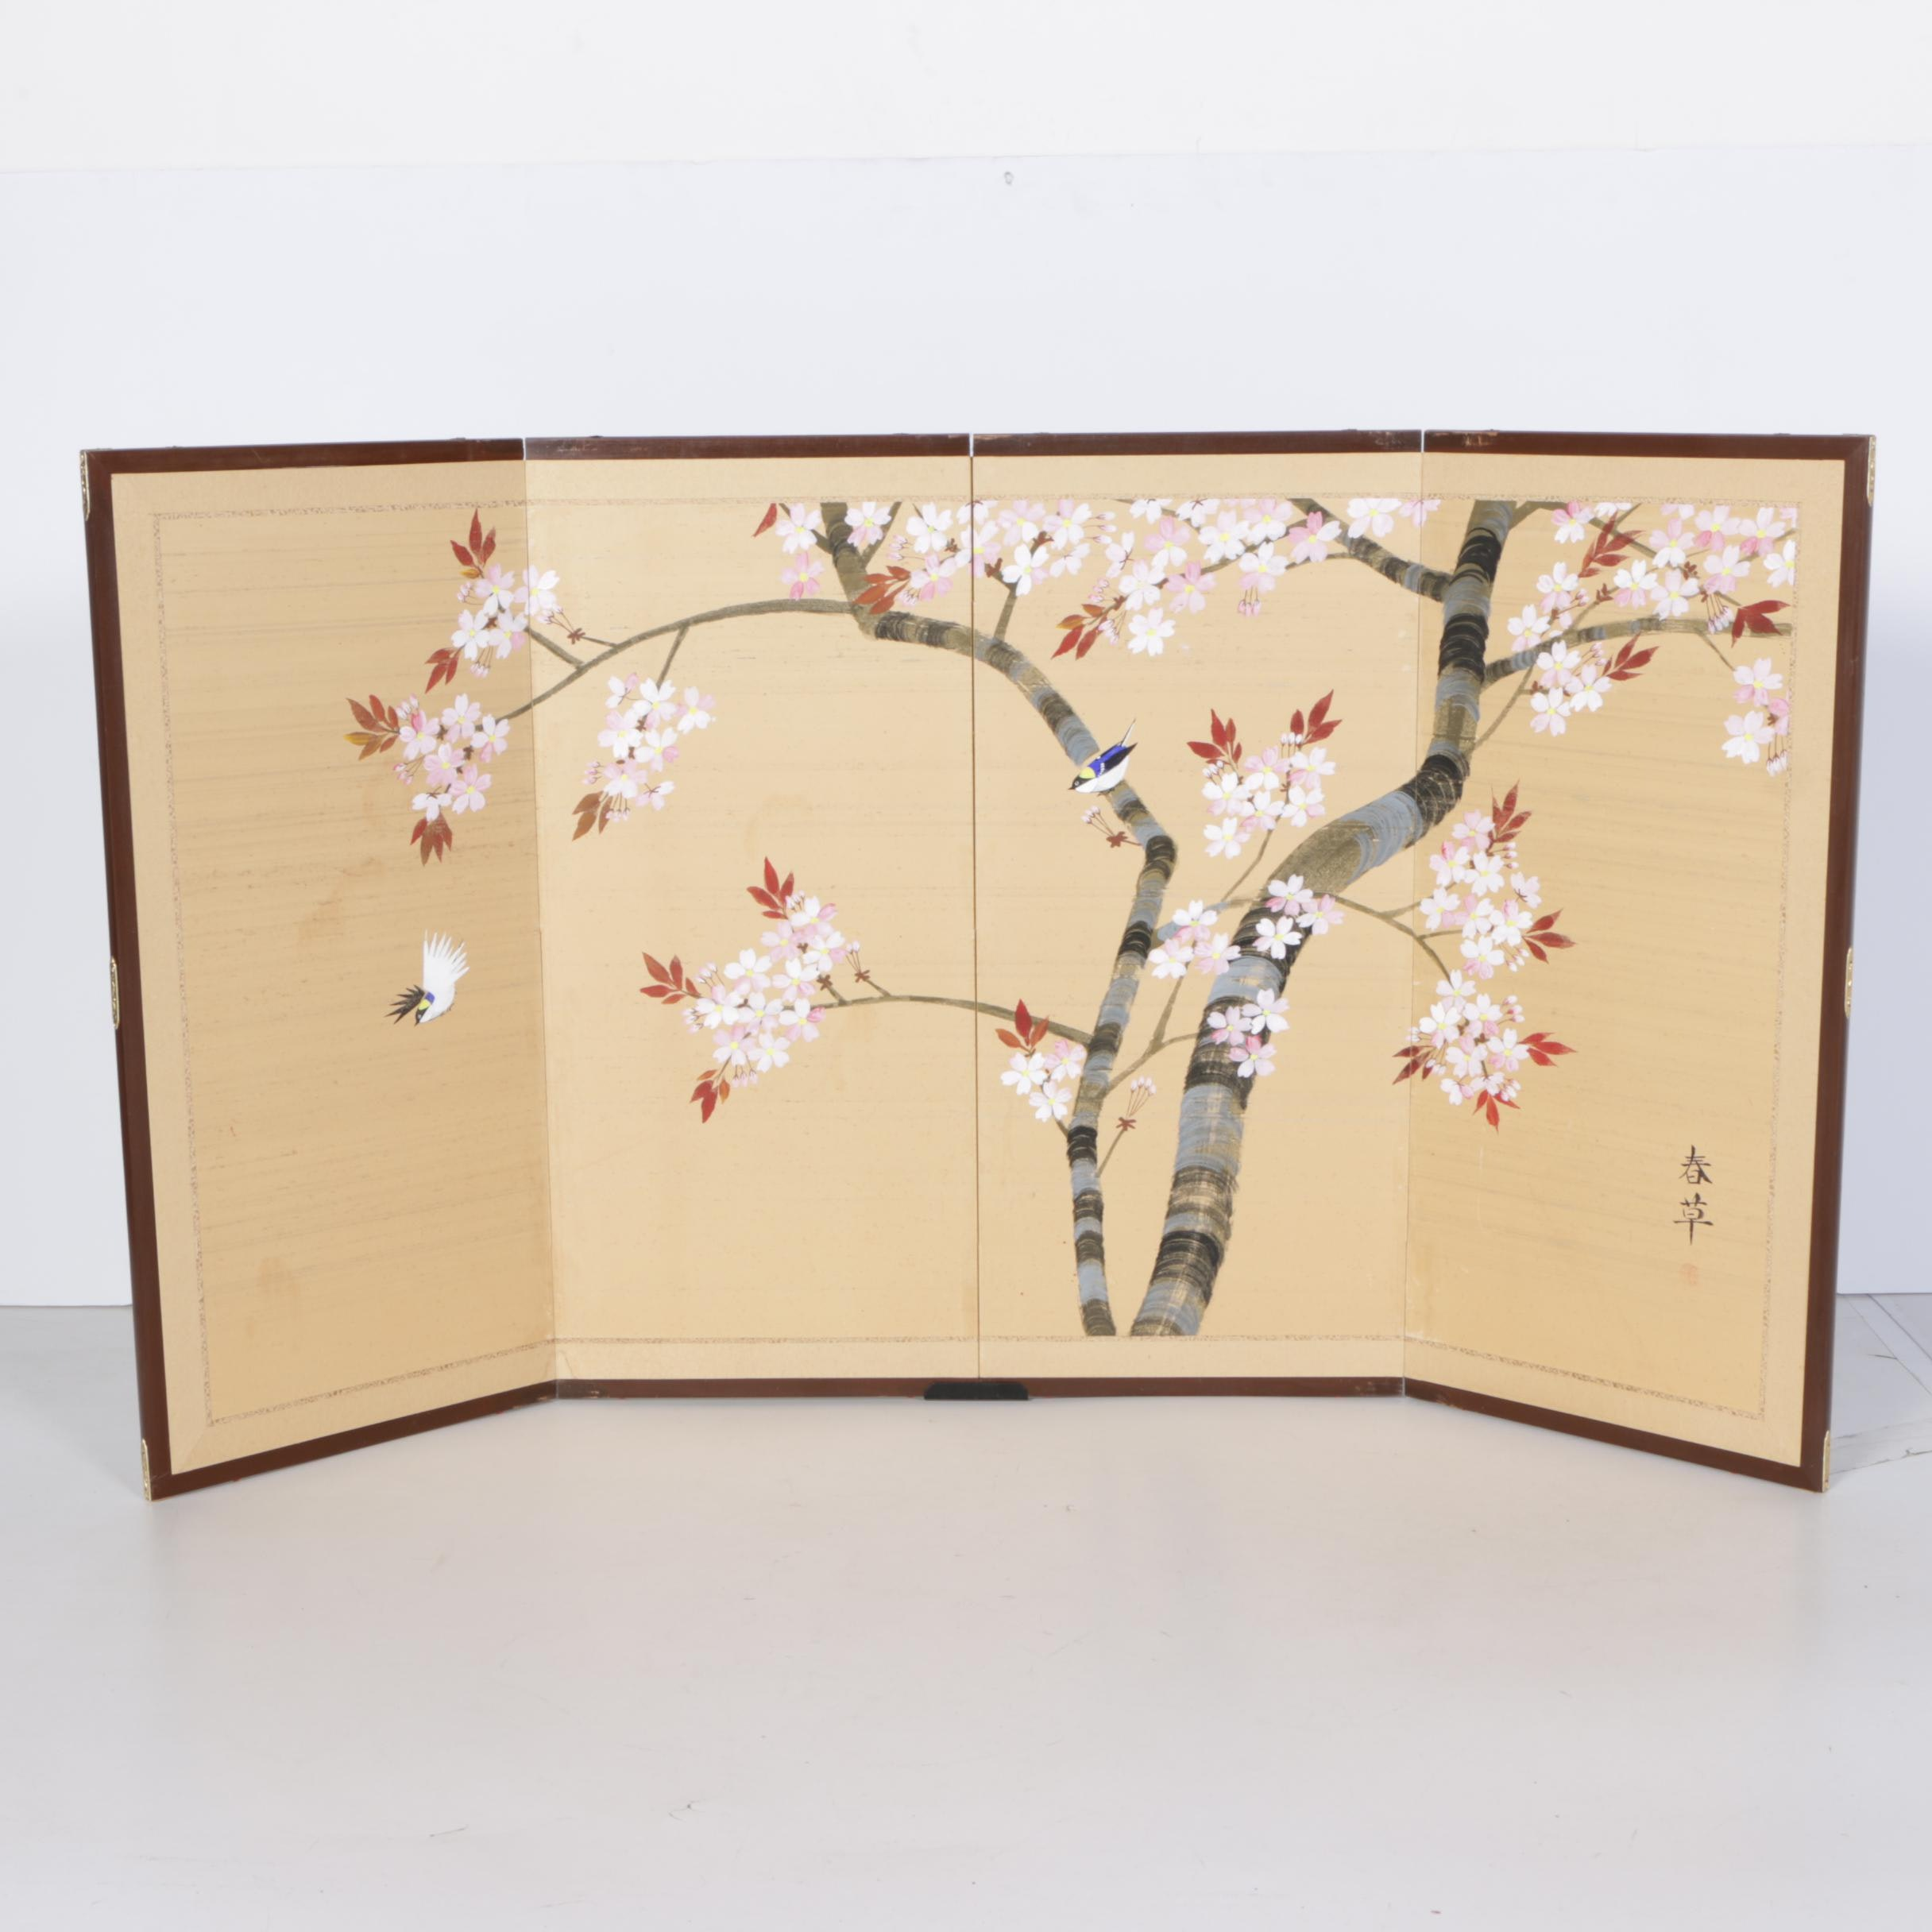 Painted Japanese Screen